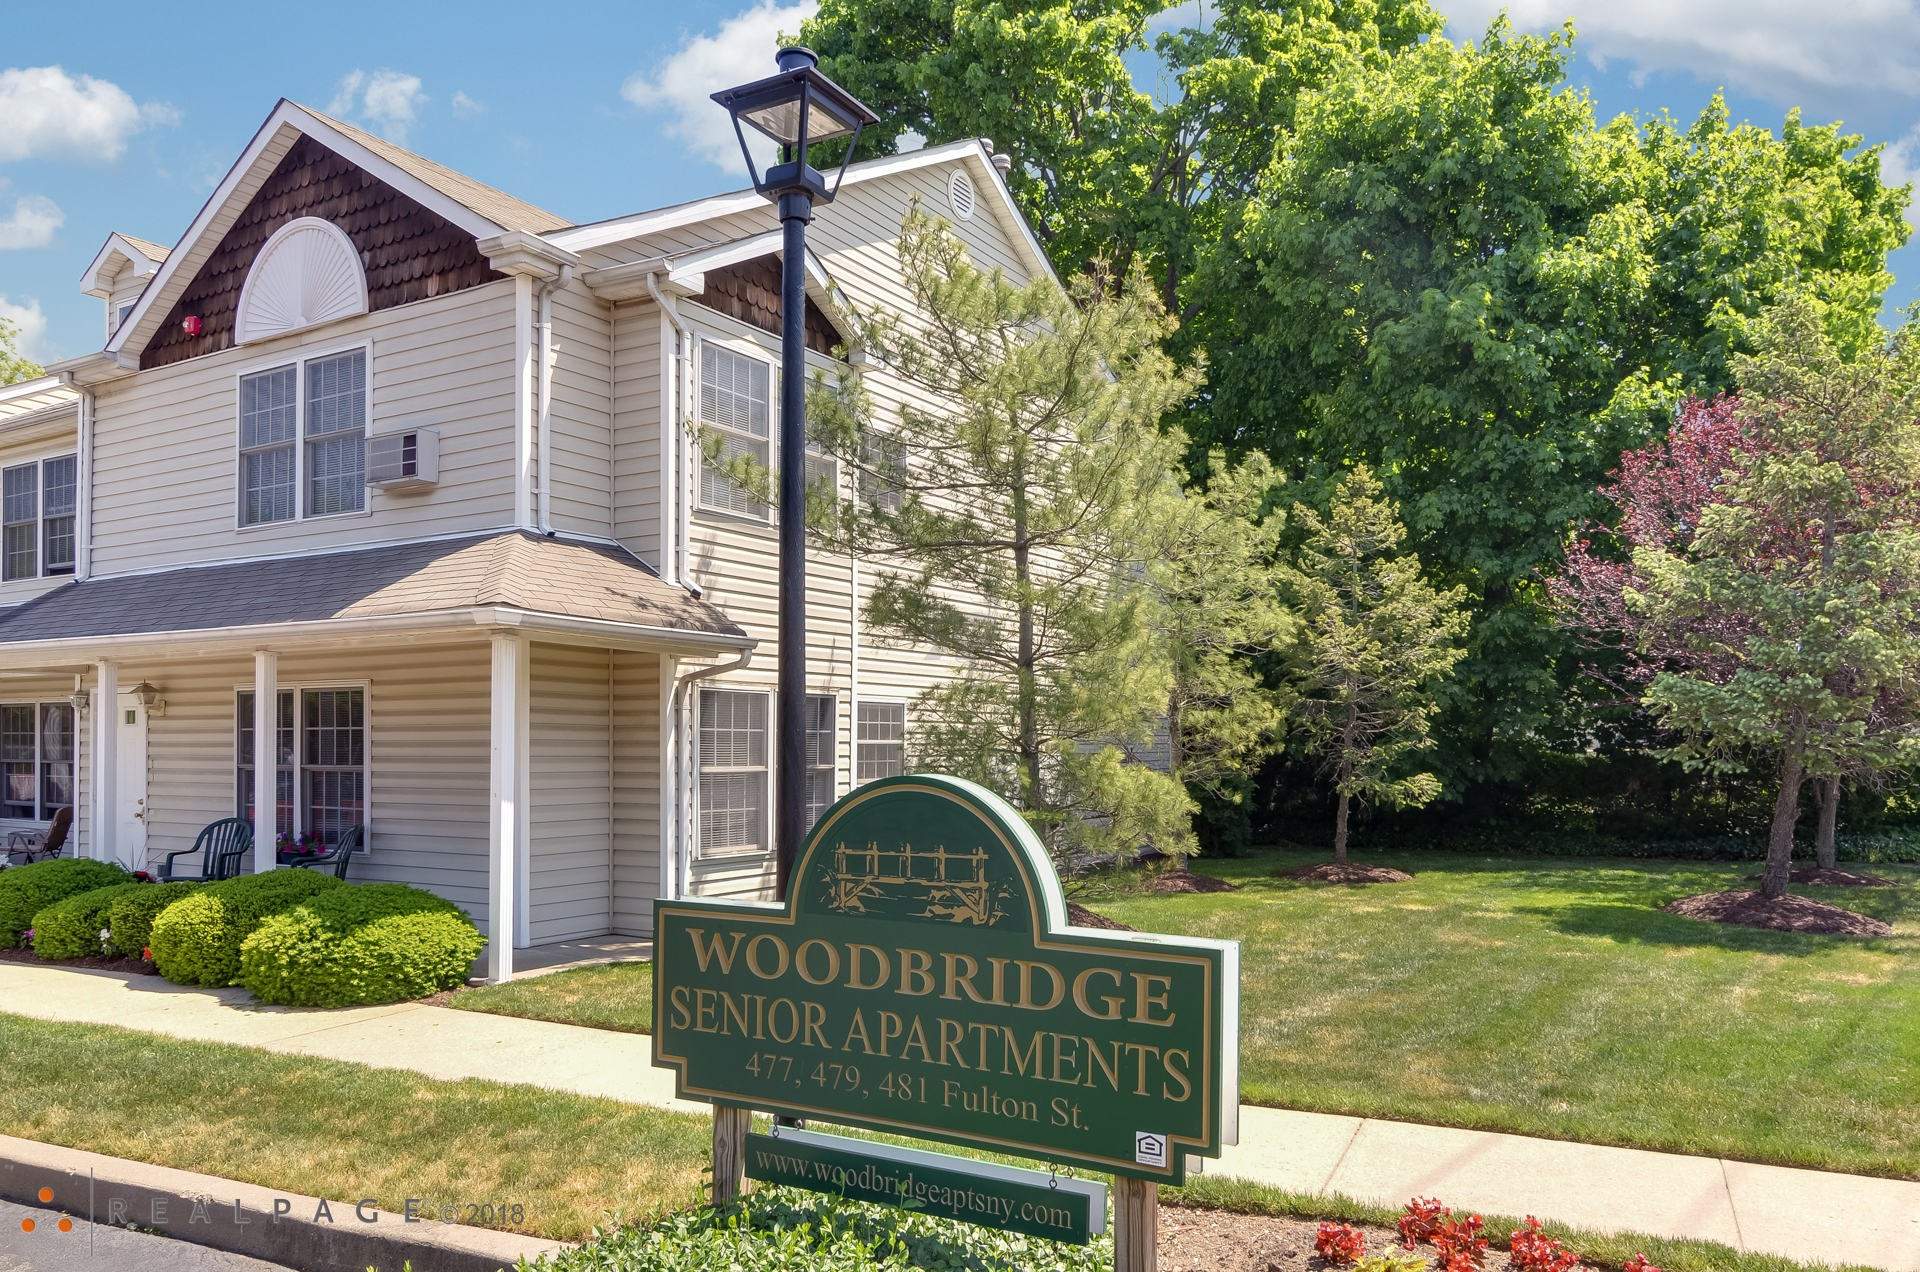 Woodbridge at Farmingdale Apartments - Farmingdale, NY ...